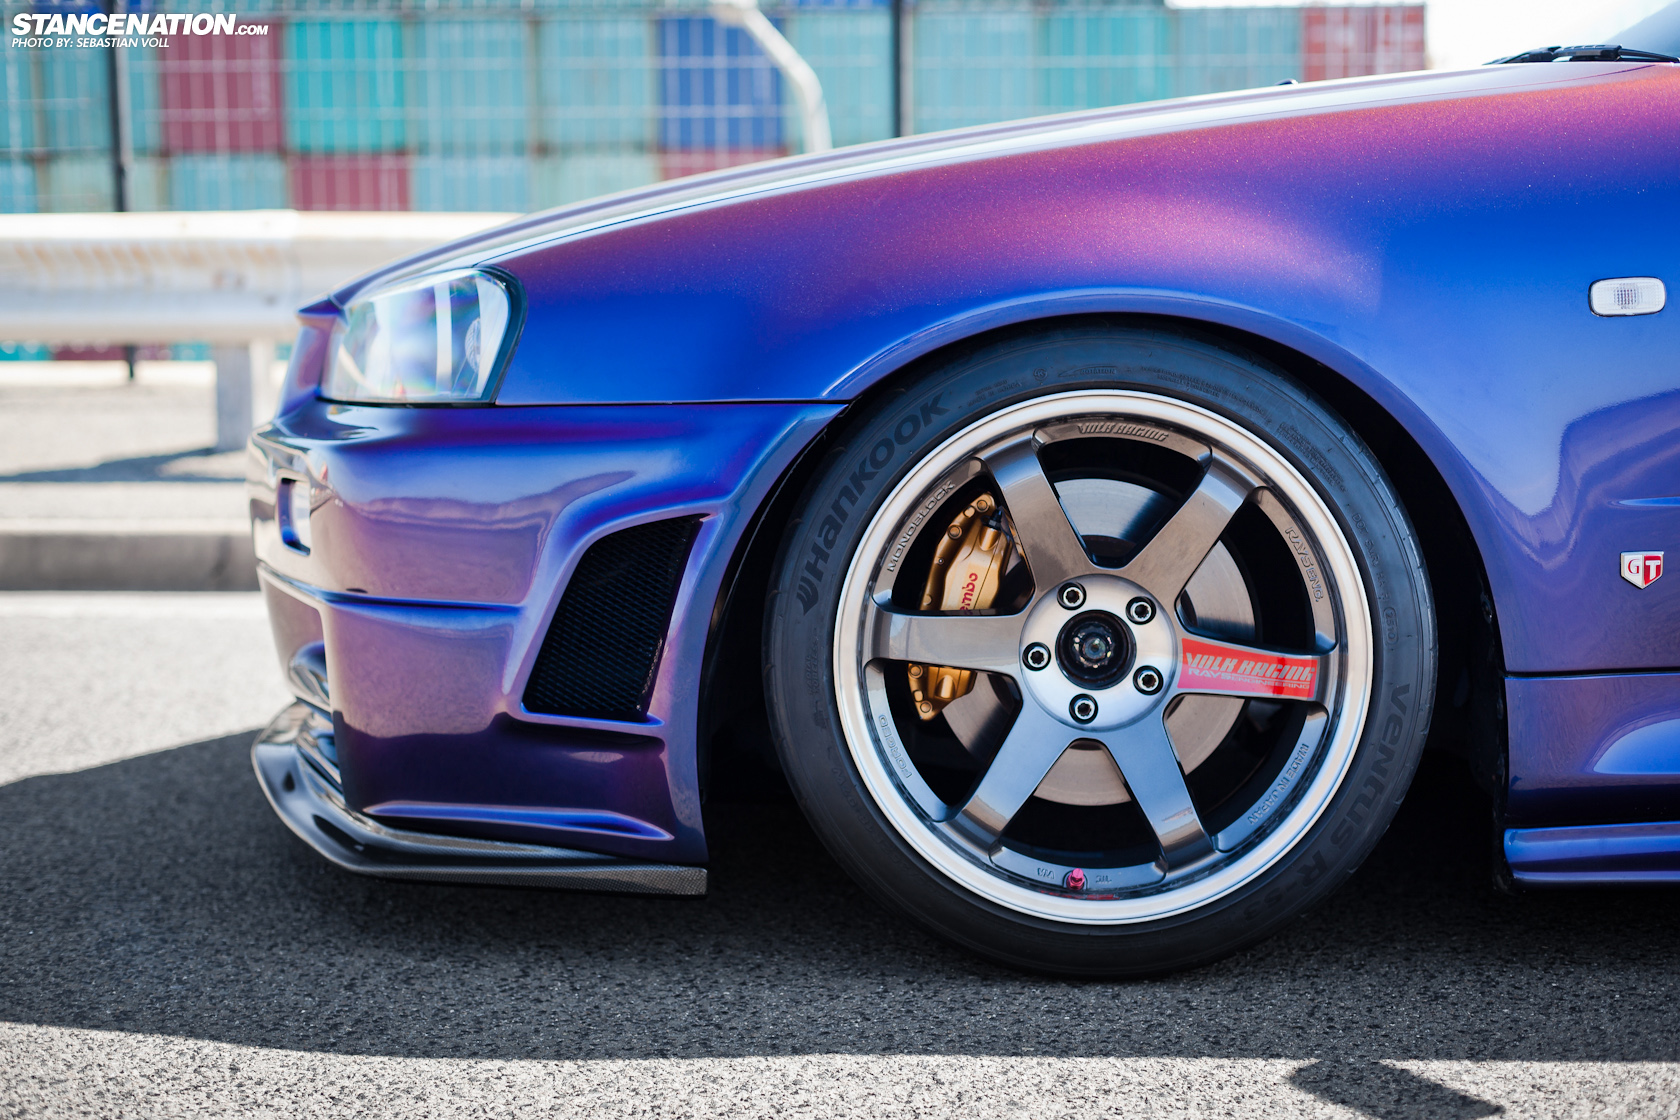 Sticking To True JDM Fashion, David Has Outfitted His Skyline With Not One  But Two Sets Of Wheels. A Set Of SSR SP3u0027s And A Set Of Volk TE37 SLu0027s  (pictured) ...